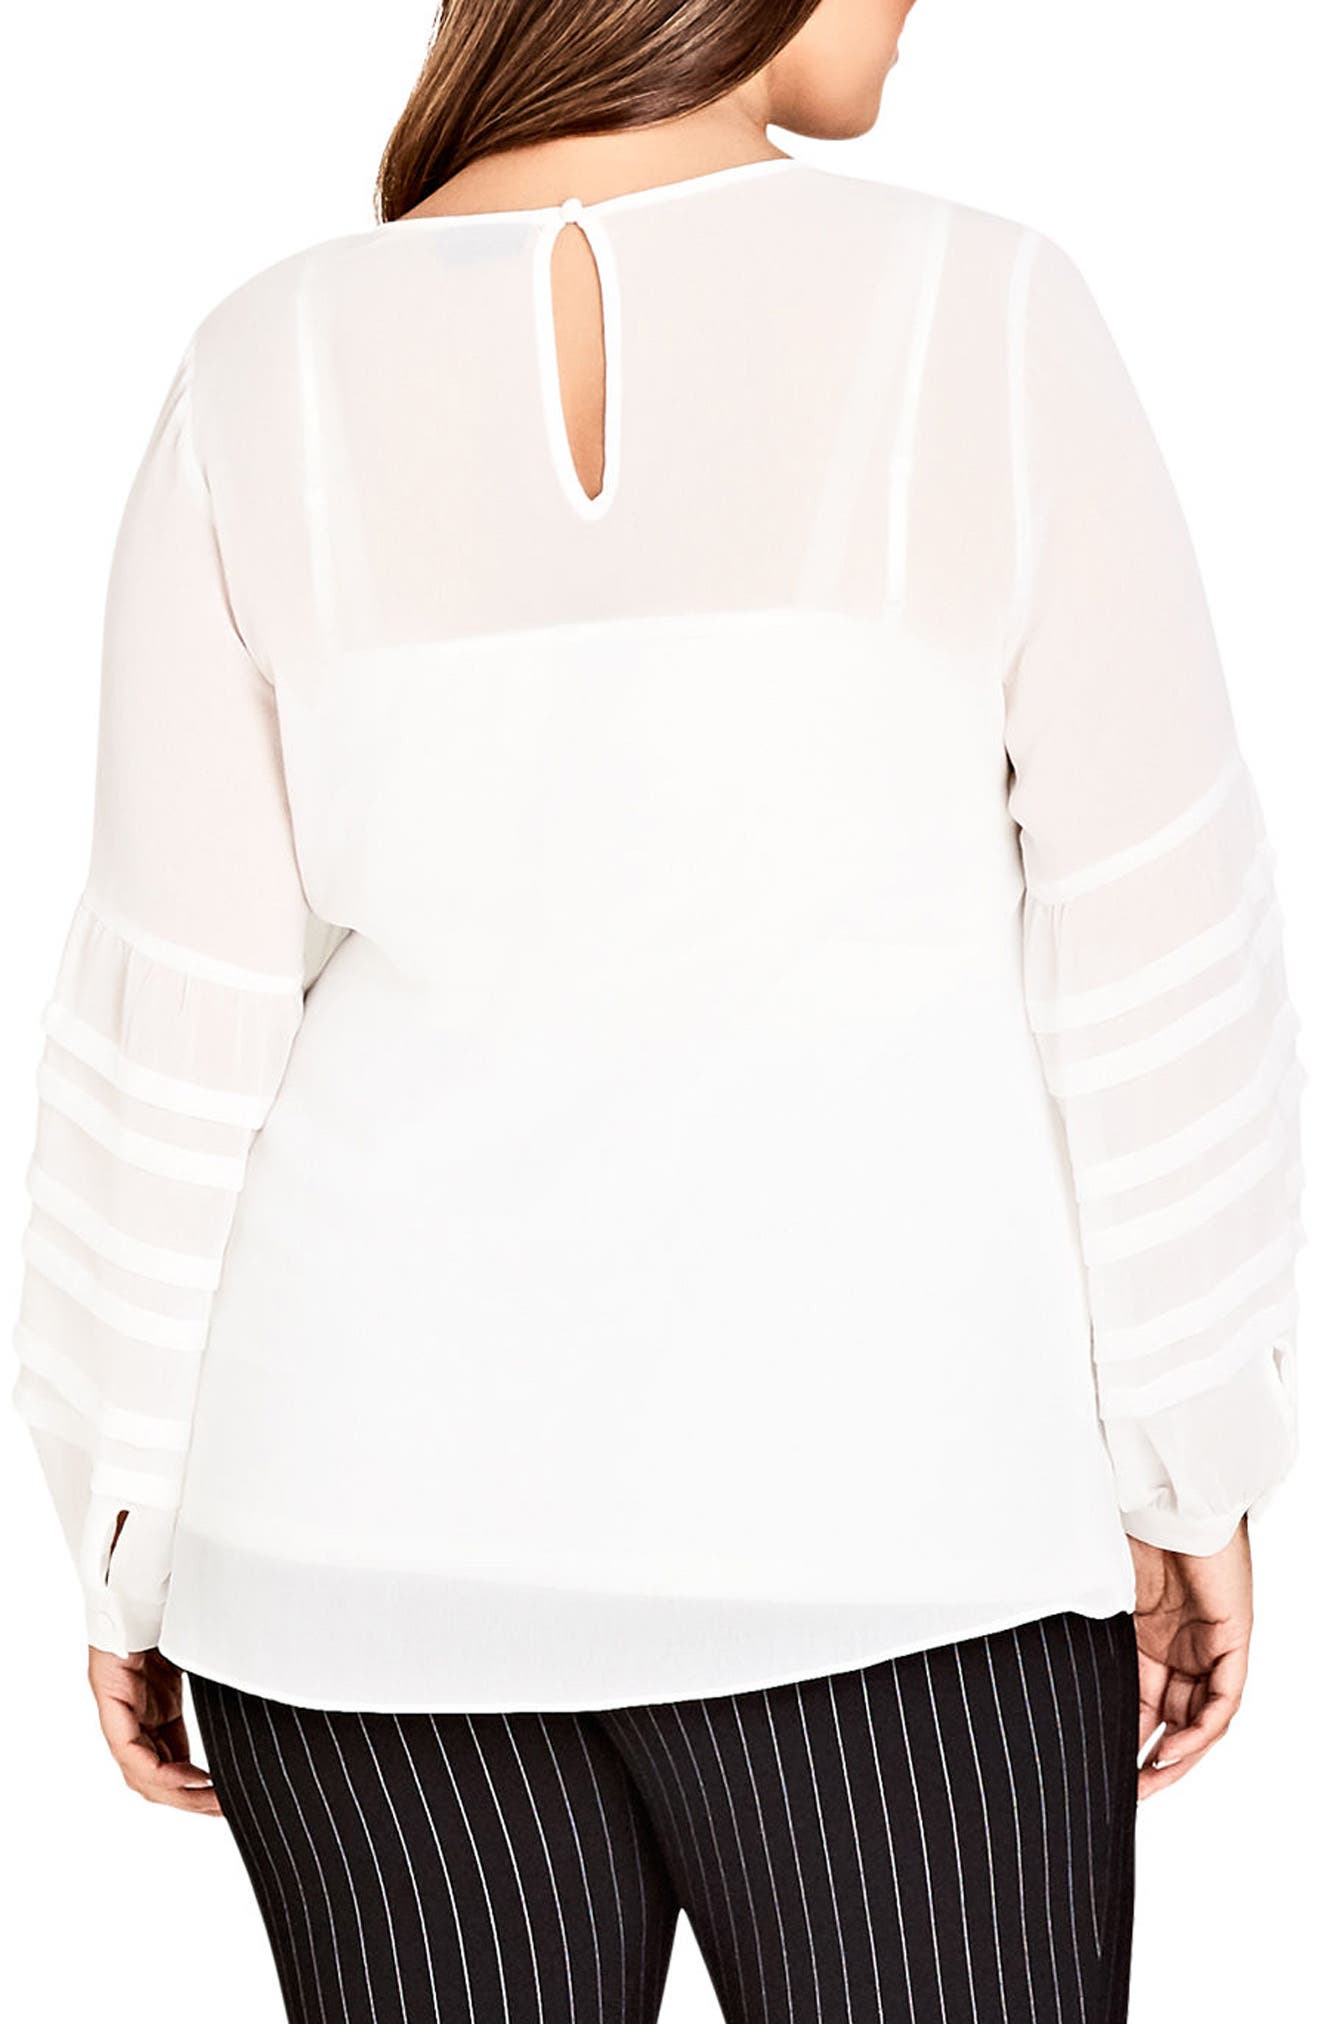 Seraphina Balloon Sleeve Top,                             Alternate thumbnail 2, color,                             Ivory